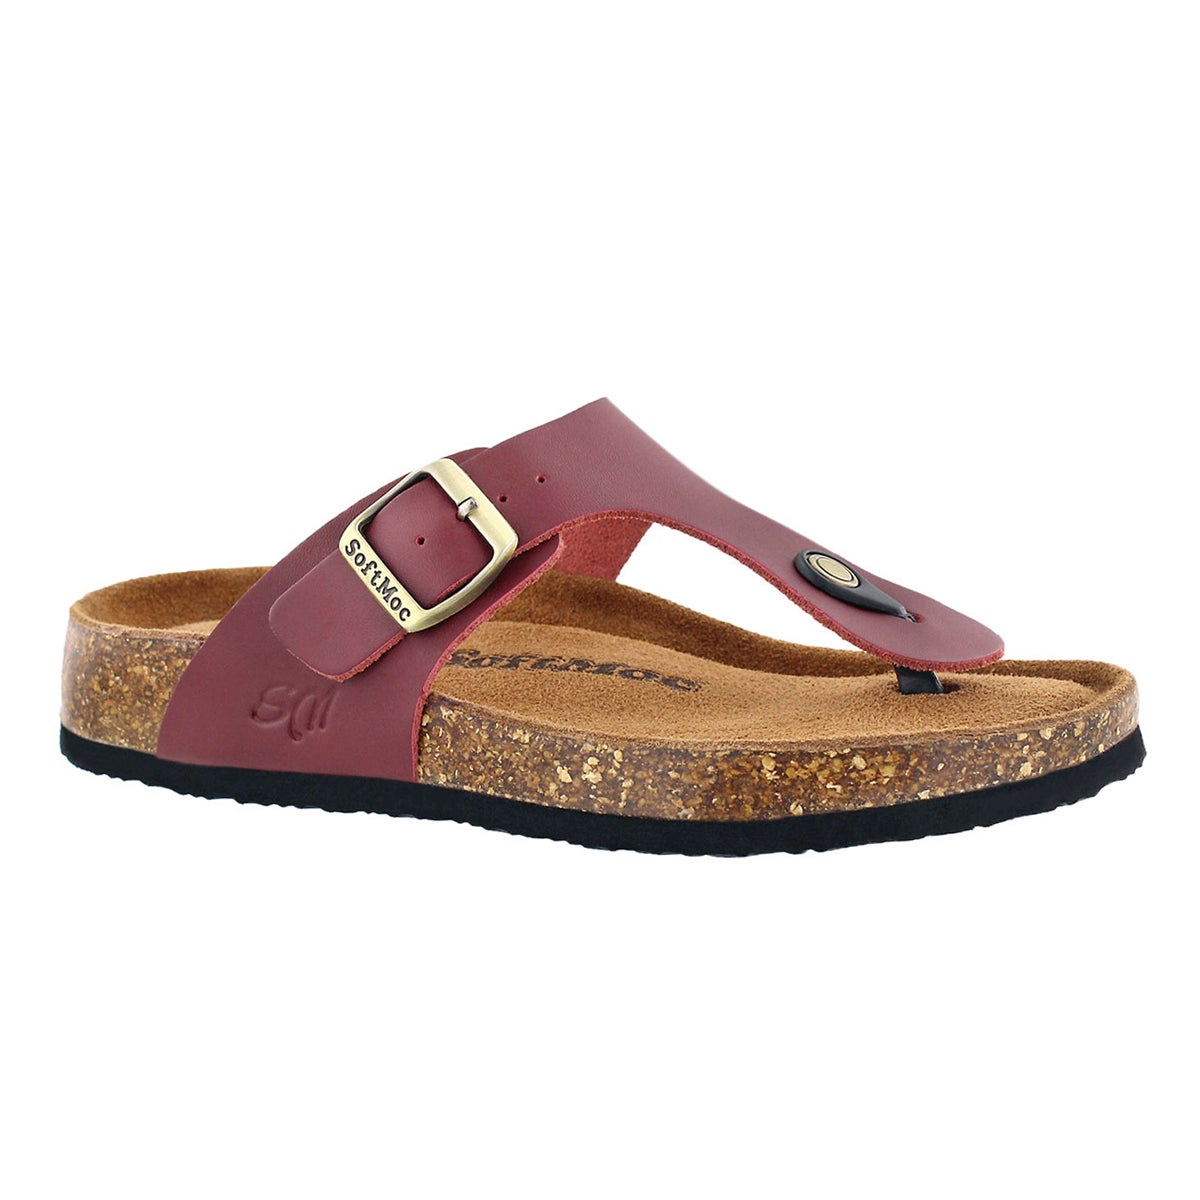 Women's ANGY 5 burgundy memory foam thong sandals